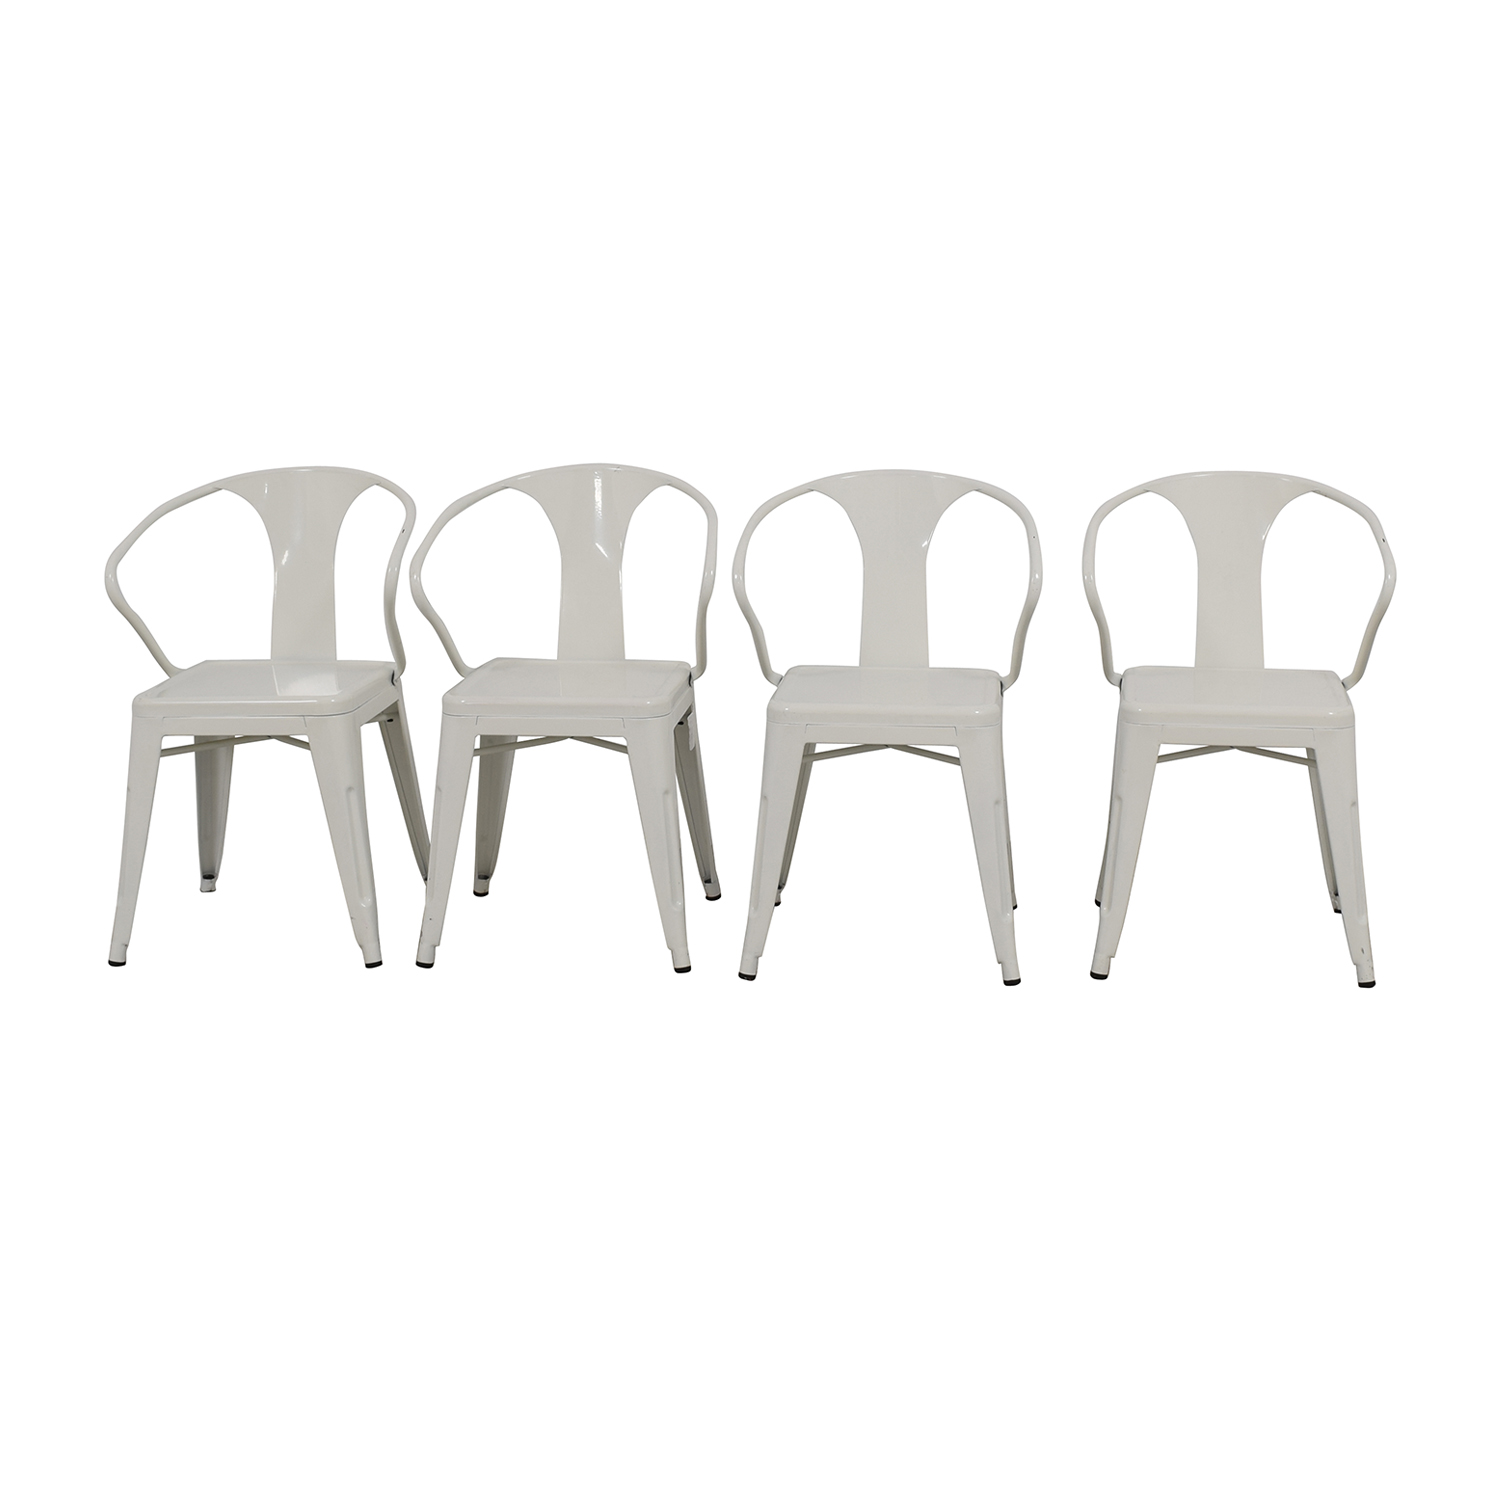 Overstock Overstock White European Chairs Used ...